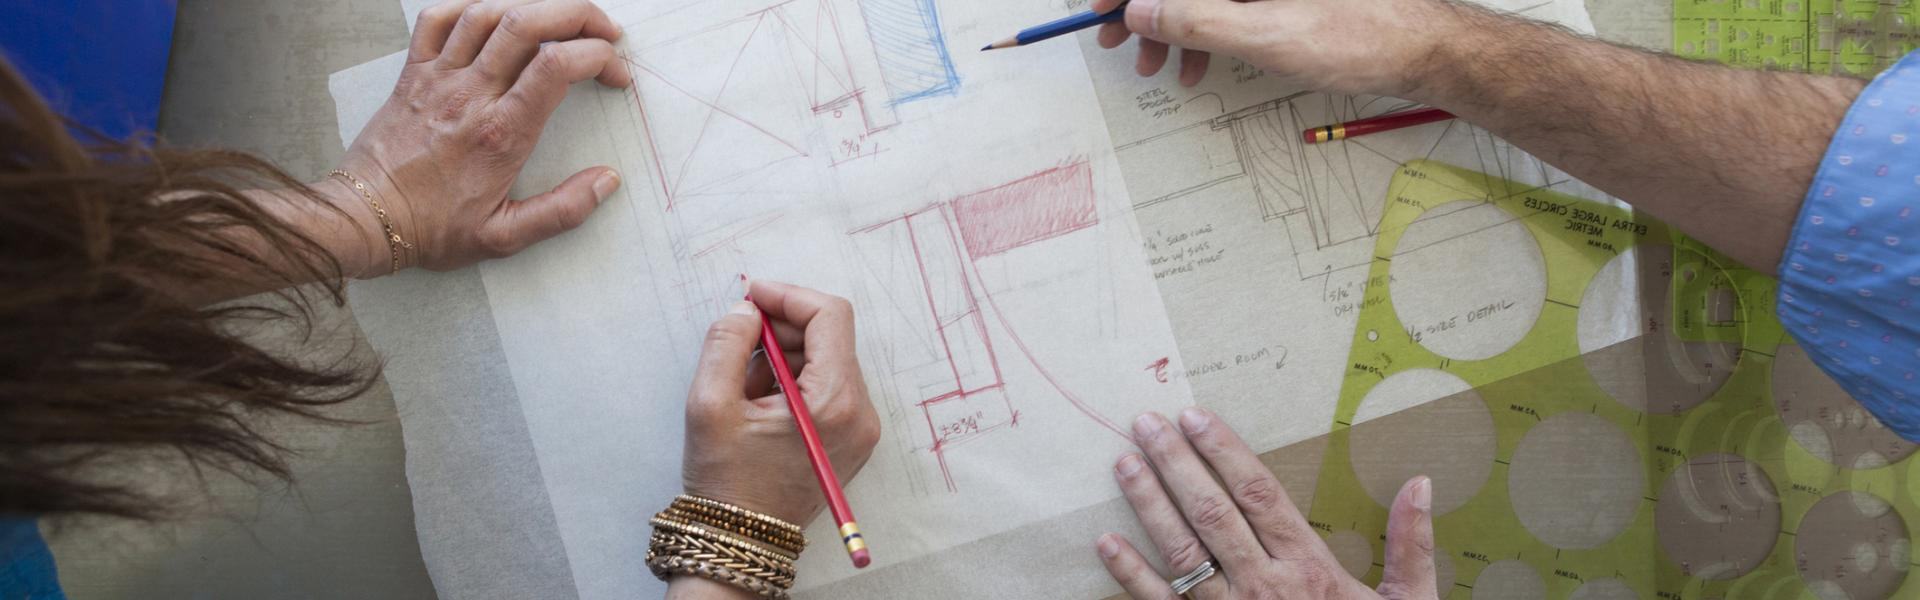 people drawing blueprints